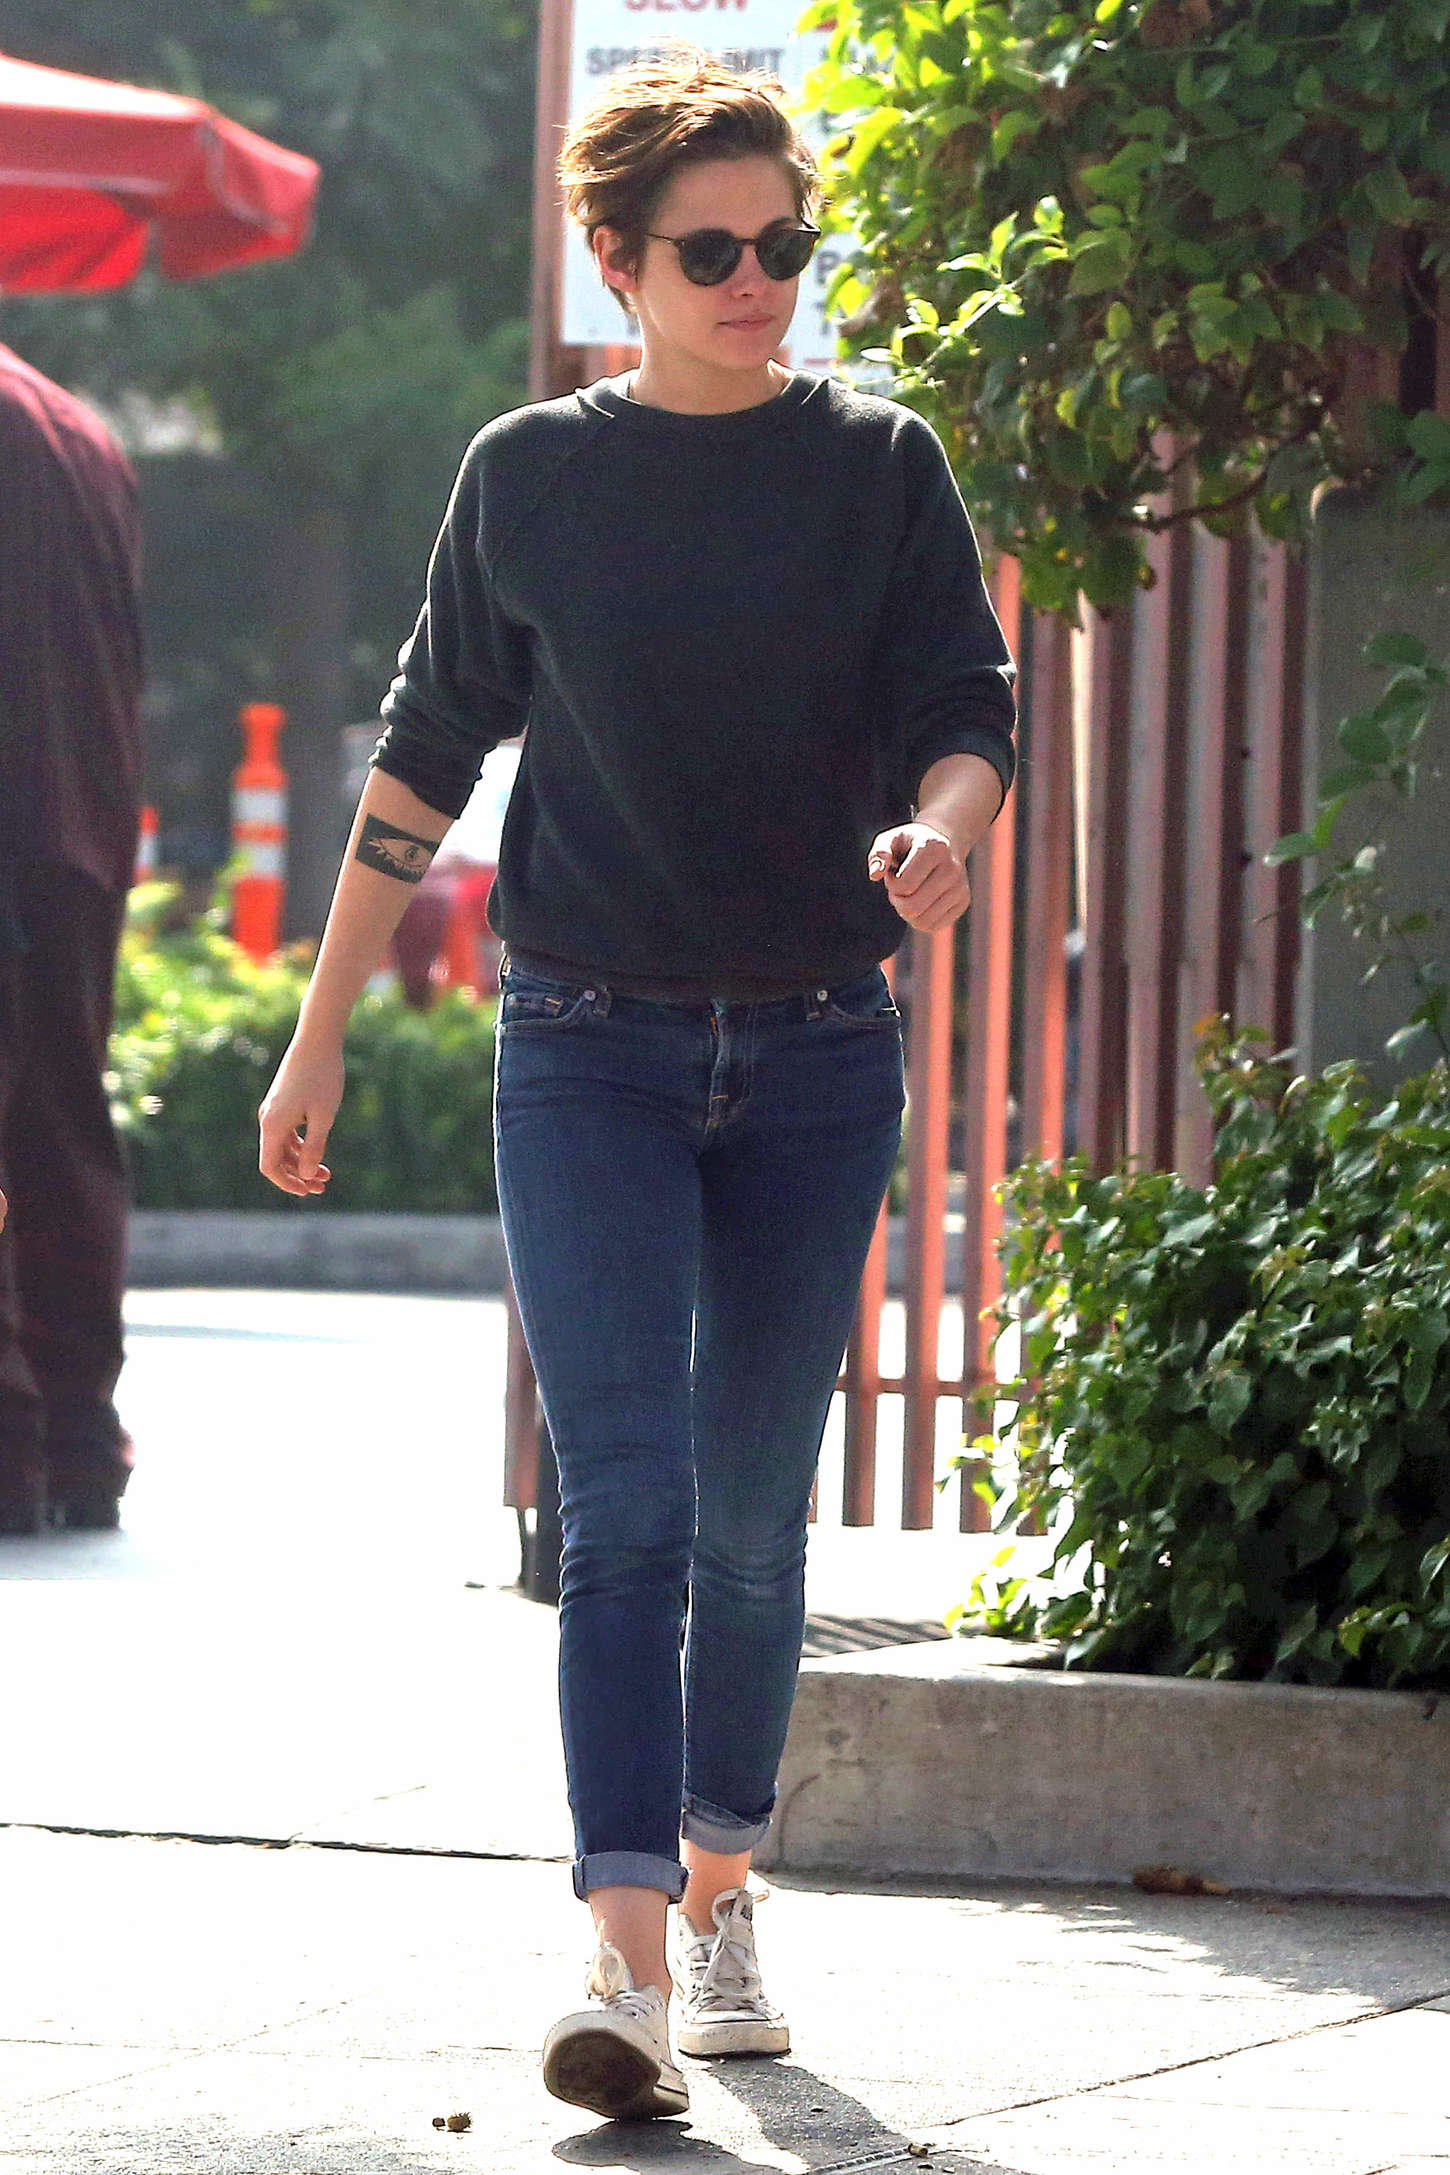 Kristen Stewart In Tight Jeans Out With Friends 43 Gotceleb